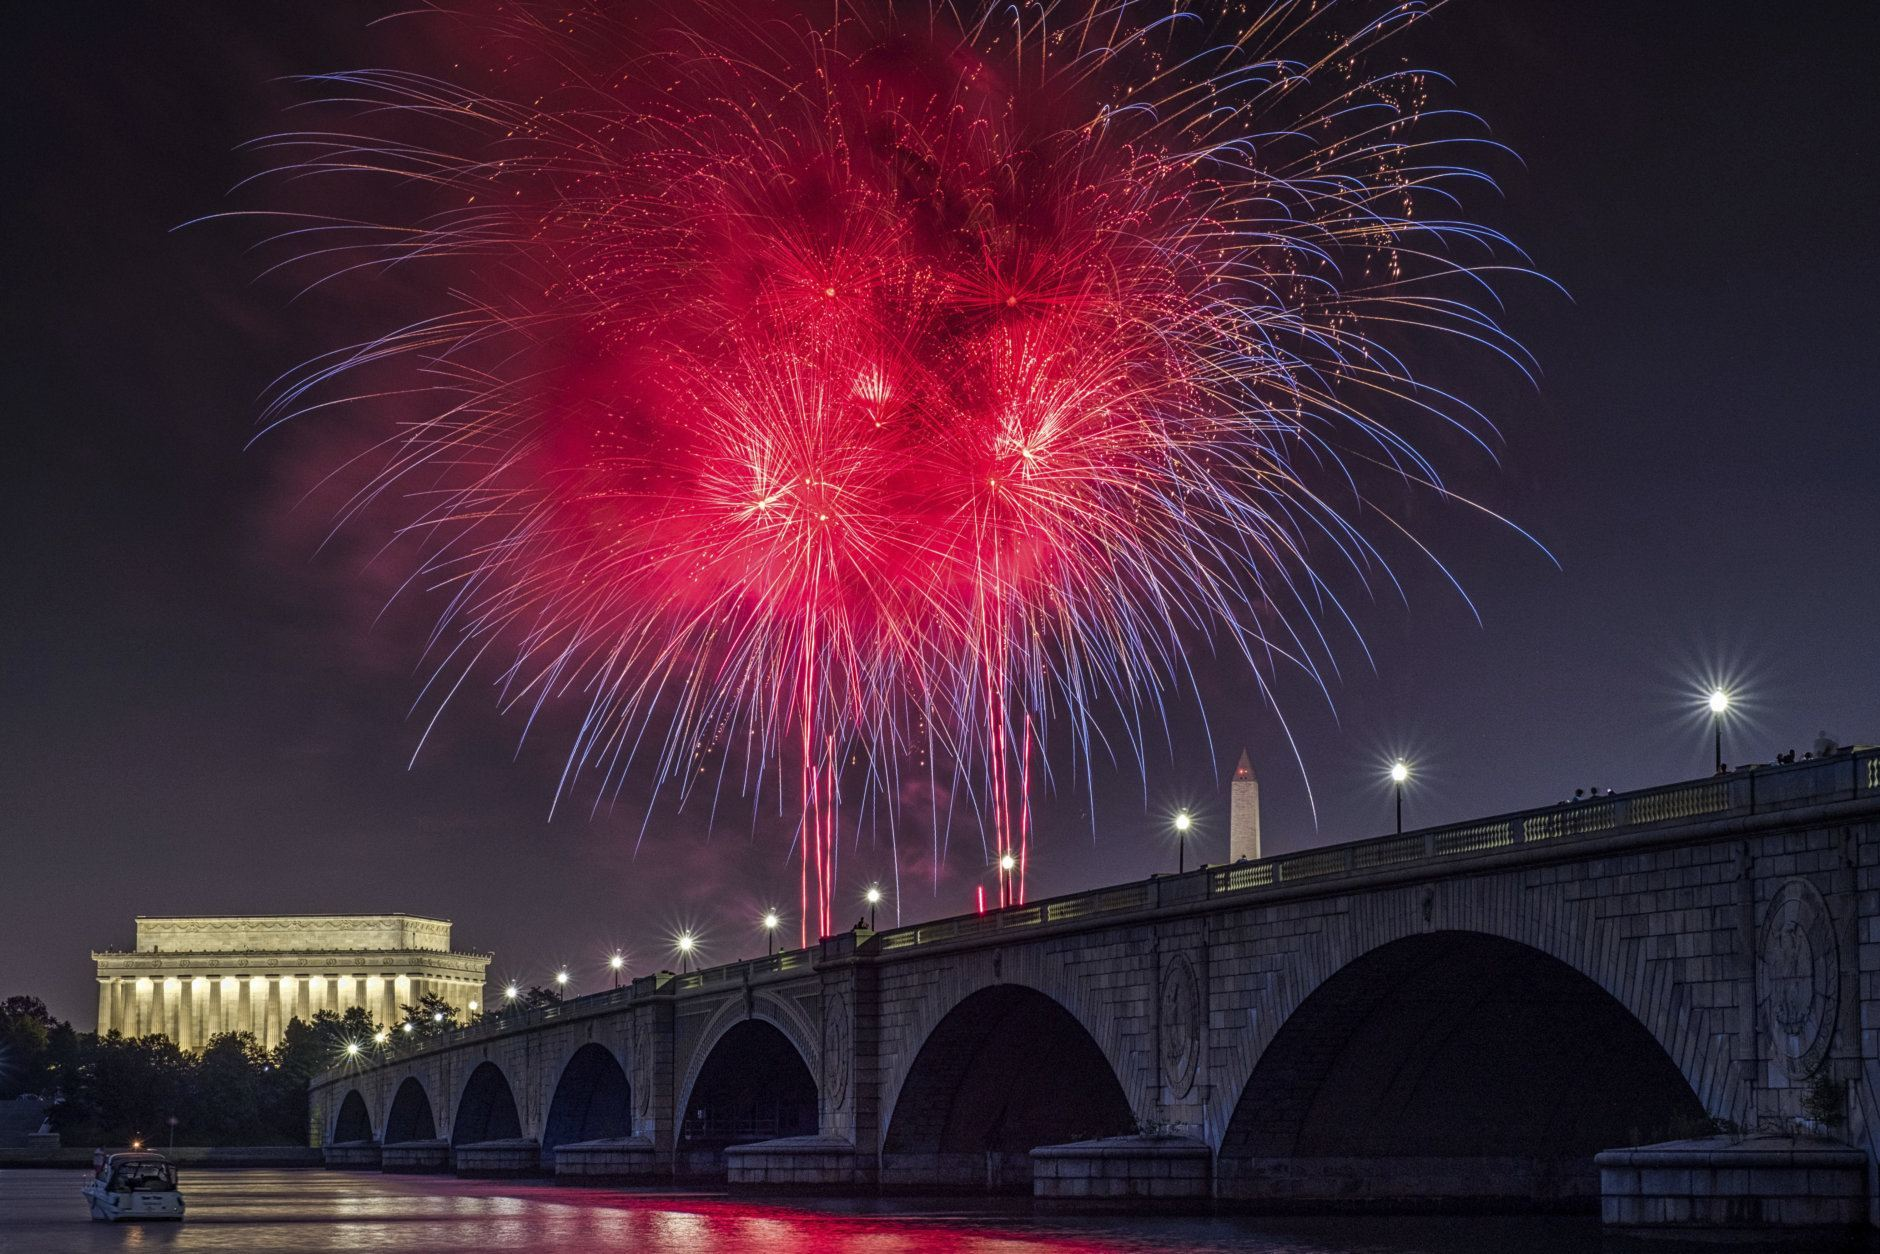 Fireworks burst over the Memorial Bridge during Independence Day celebrations on the National Mall in Washington, Tuesday, July 4, 2017. (AP Photo/J. David Ake)